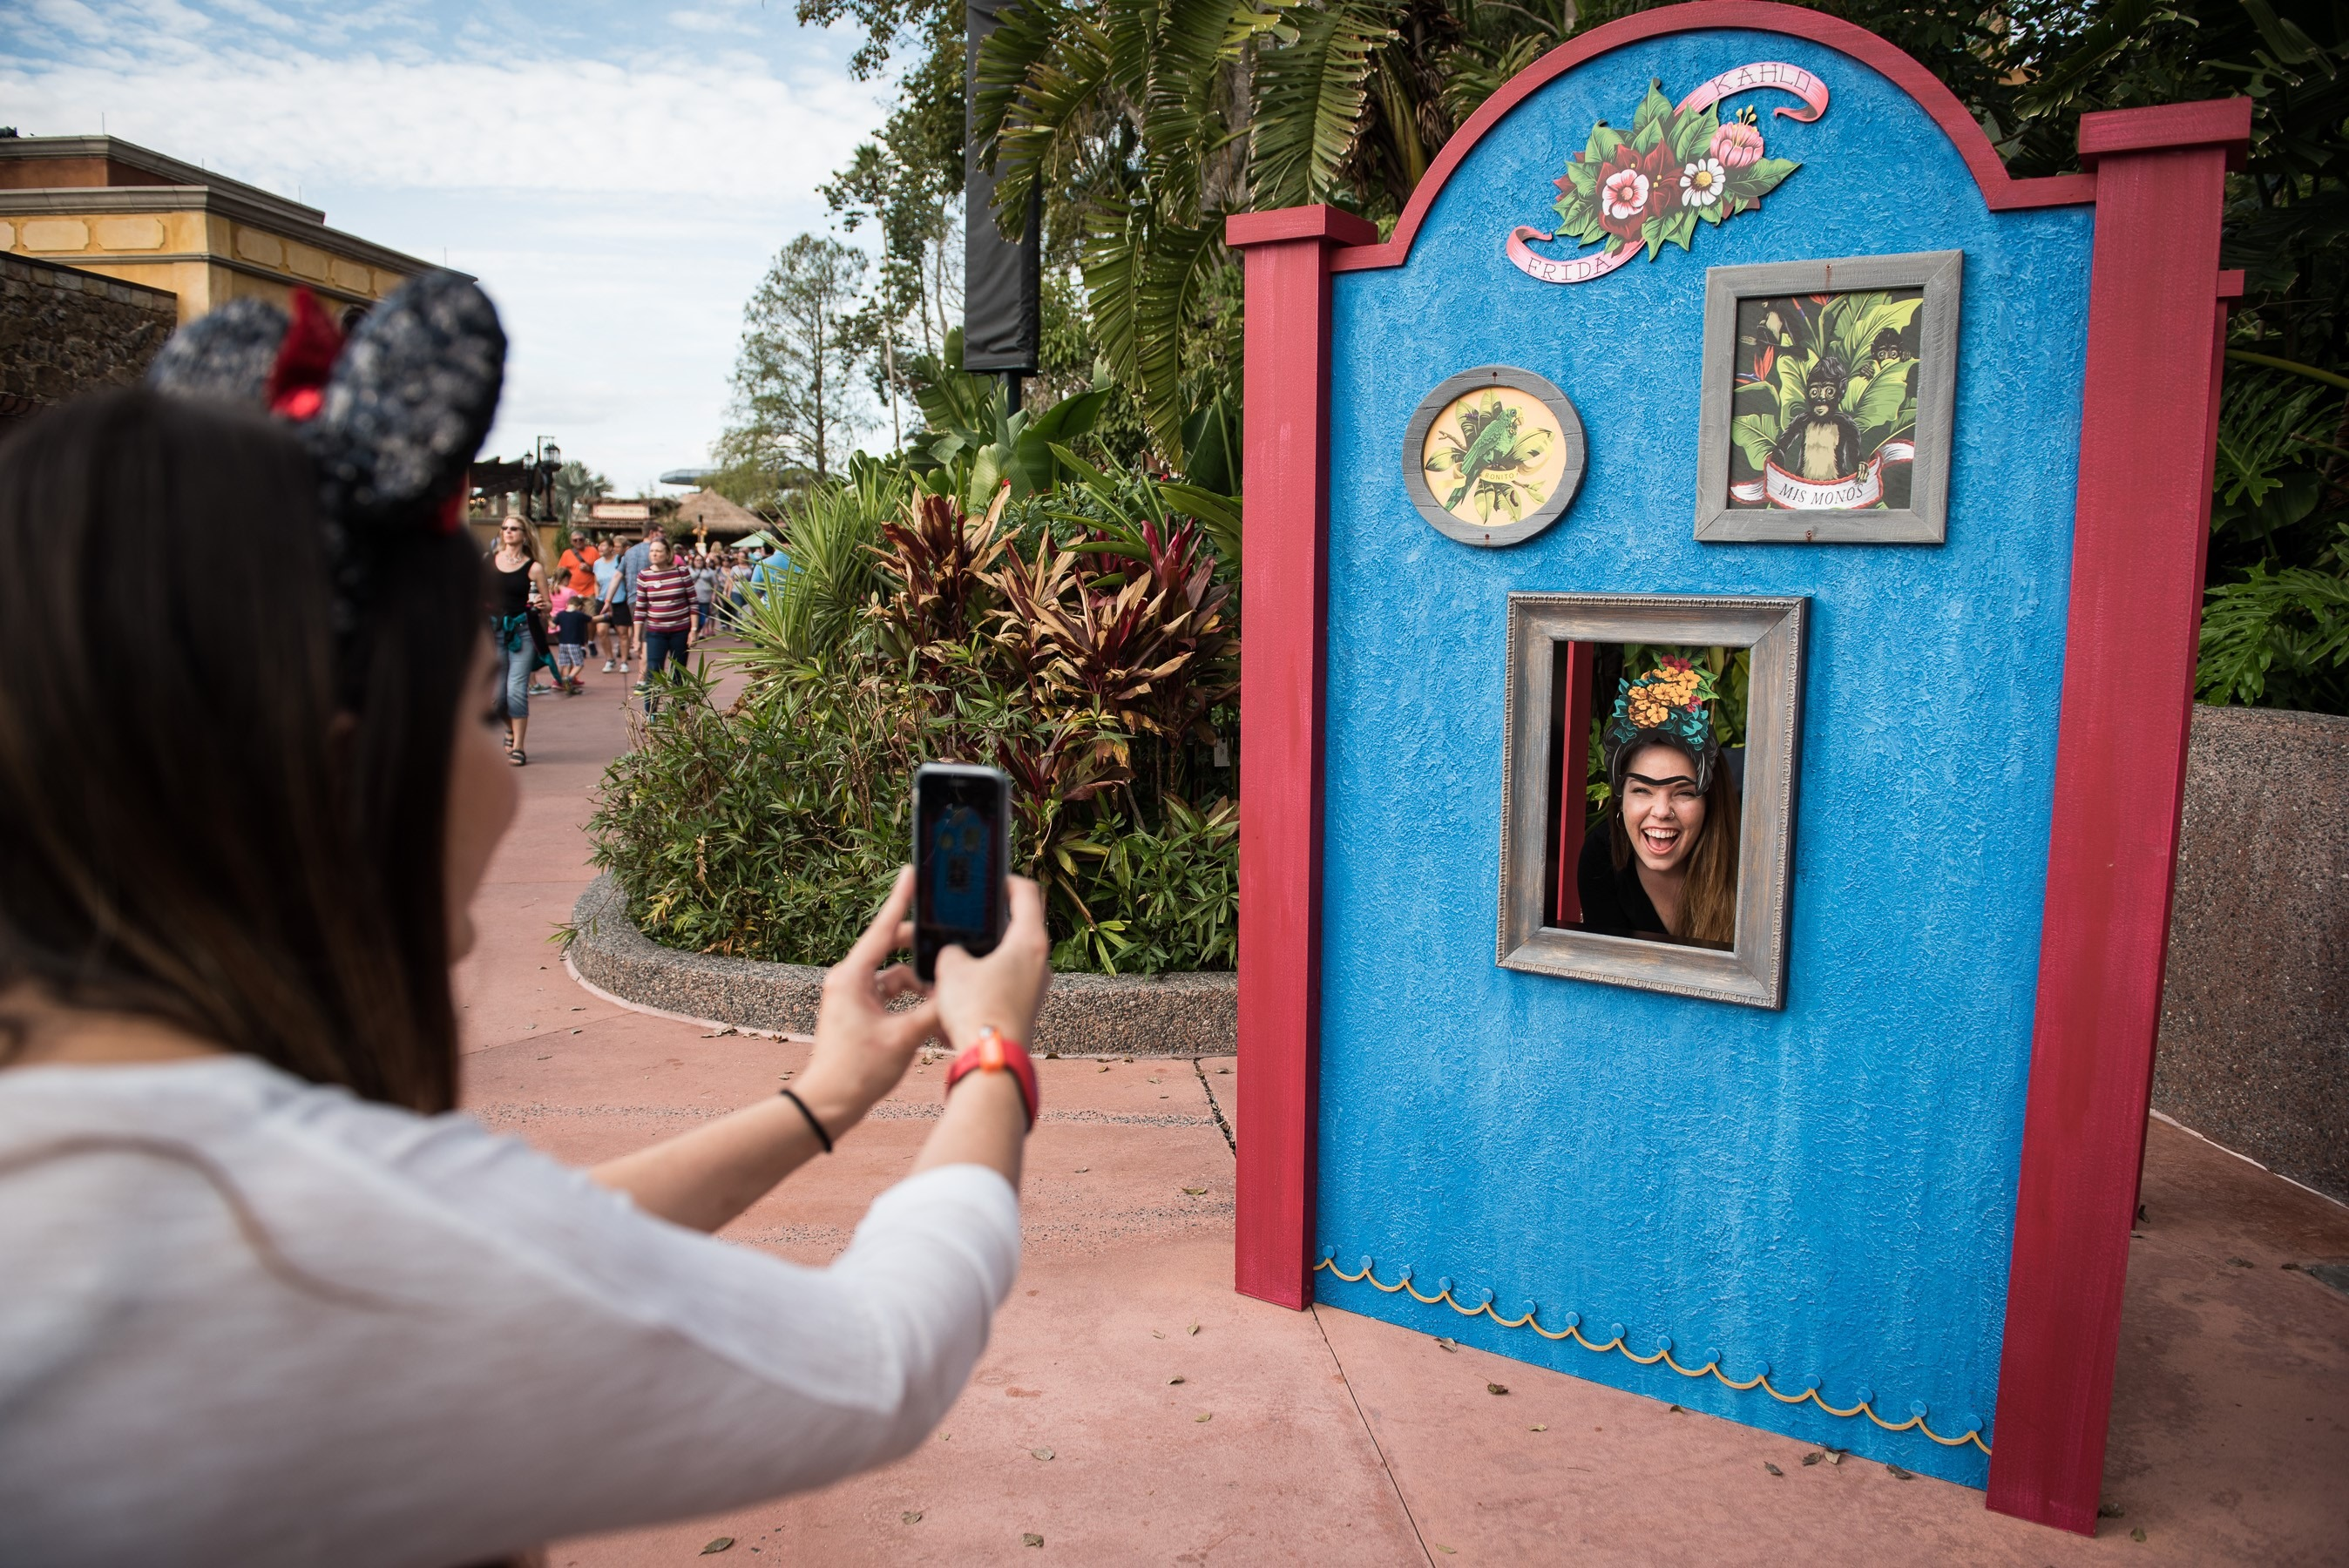 2019 Epcot International Festival of the Arts Returns in January with 39 Days of Artful Fun